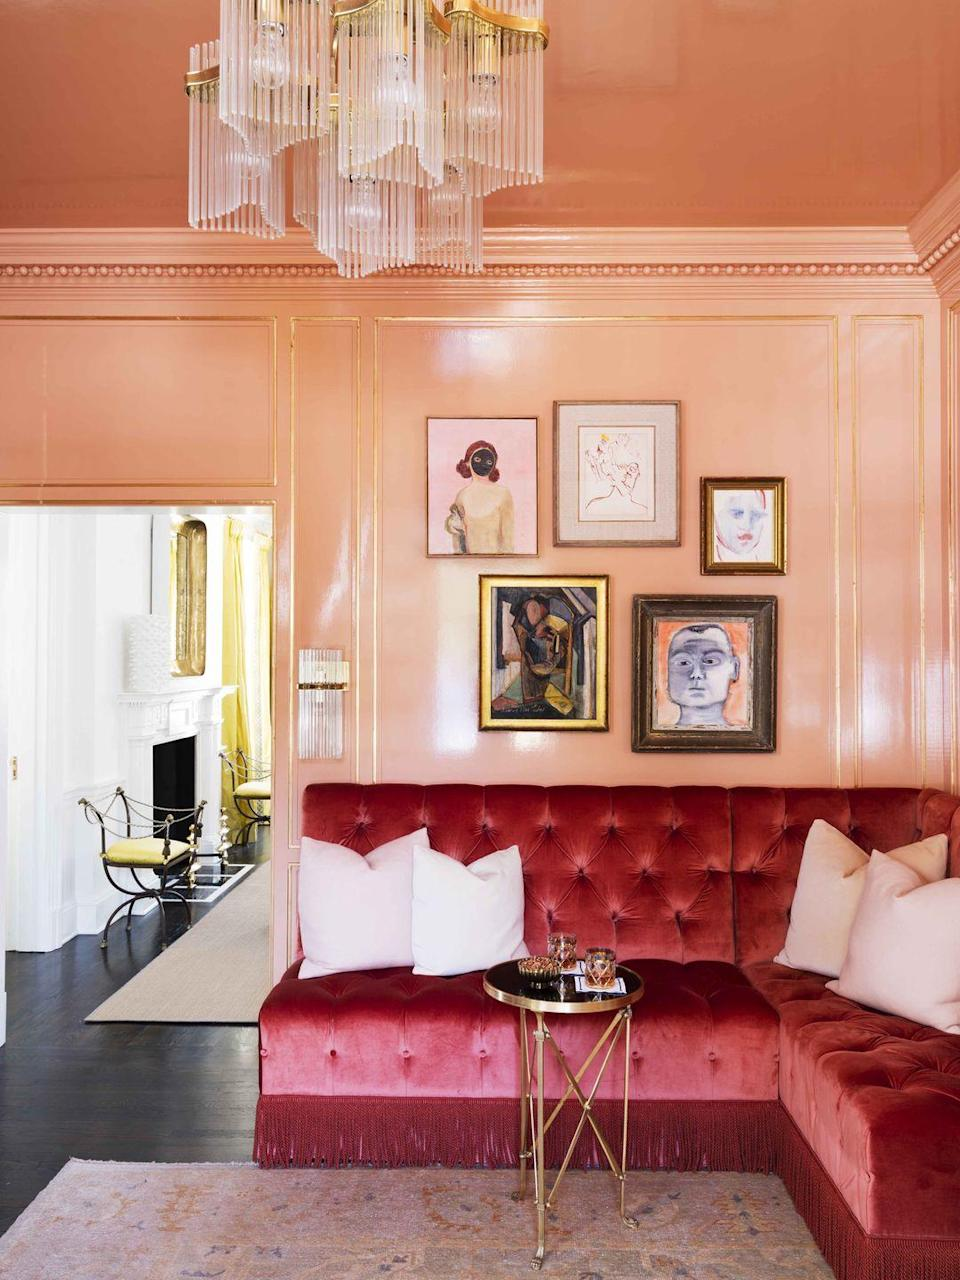 """<p>With walls and a ceiling cloaked in a saturated orange-pink (<a href=""""https://www.farrow-ball.com/"""" rel=""""nofollow noopener"""" target=""""_blank"""" data-ylk=""""slk:Farrow & Ball's"""" class=""""link rapid-noclick-resp"""">Farrow & Ball's</a> Fowler Pink), the ladies' lounge in an Atlanta home by designer <a href=""""http://www.melanieturnerinteriors.com/"""" rel=""""nofollow noopener"""" target=""""_blank"""" data-ylk=""""slk:Melanie Turner"""" class=""""link rapid-noclick-resp"""">Melanie Turner</a> is the epitome of glamour. The custom banquette is covered in a sumptuous <a href=""""https://www.pierrefrey.com/en/"""" rel=""""nofollow noopener"""" target=""""_blank"""" data-ylk=""""slk:Pierre Frey"""" class=""""link rapid-noclick-resp"""">Pierre Frey</a> velvet.</p>"""